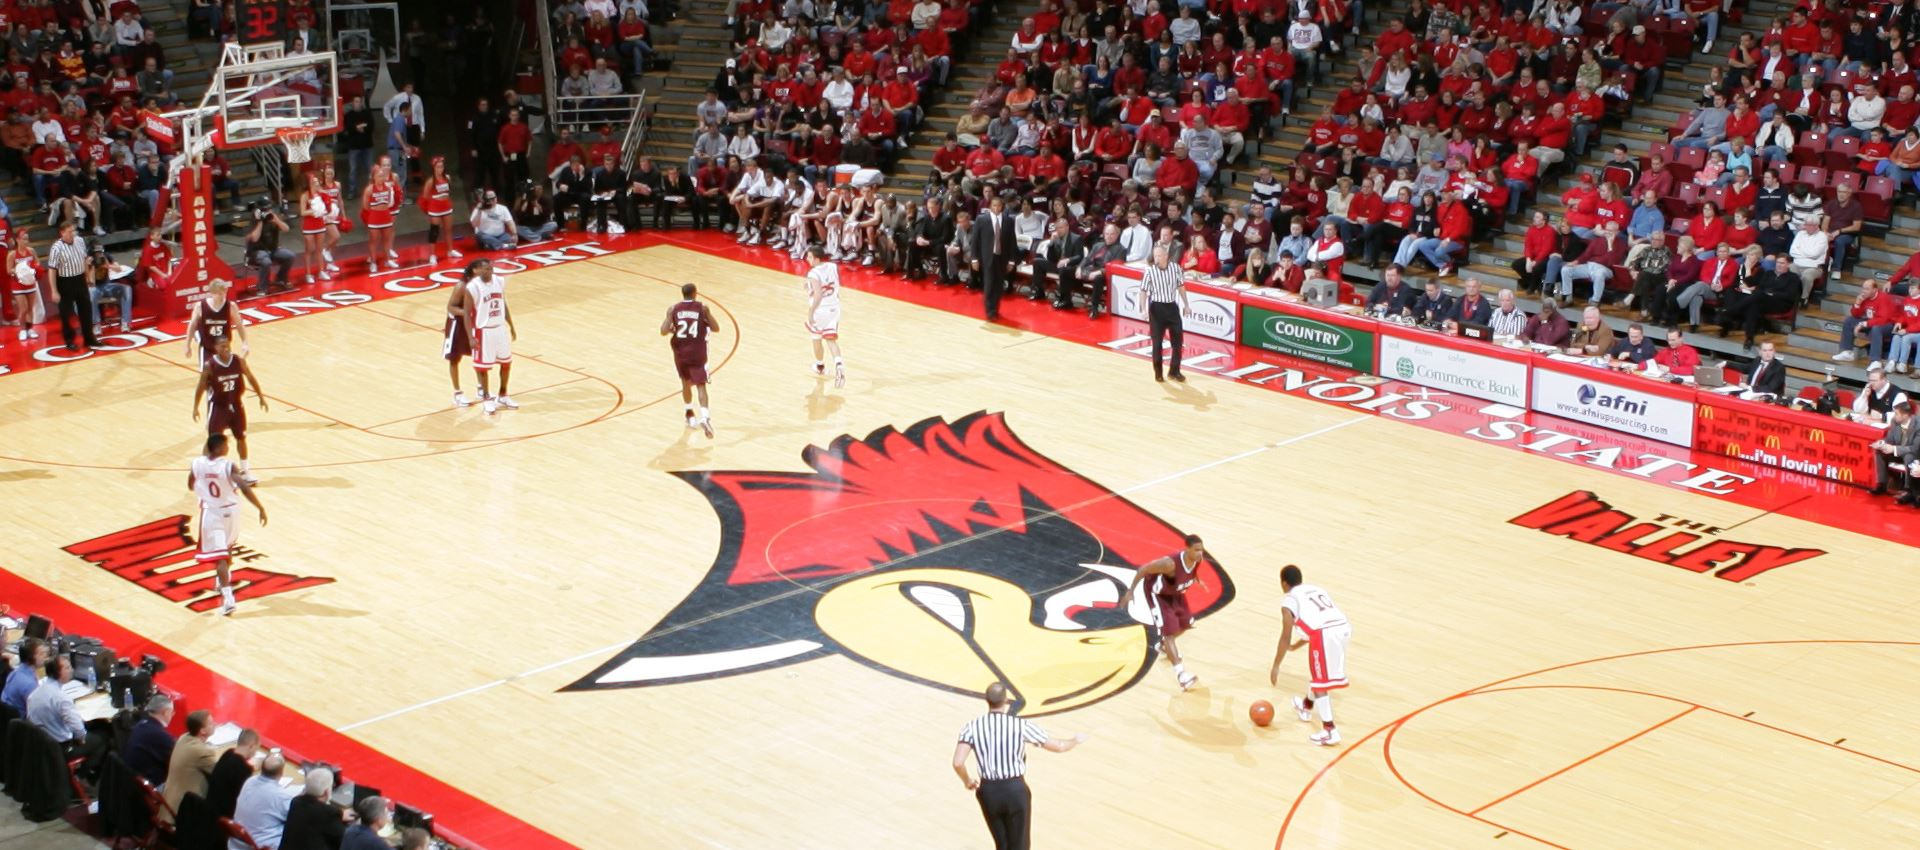 LEARFIELD INTRODUCES ILLINOIS STATE REDBIRD SPORTS PROPERTIES TEAM LED BY 30-YEAR INDUSTRY VET LARRY HOEPFNER